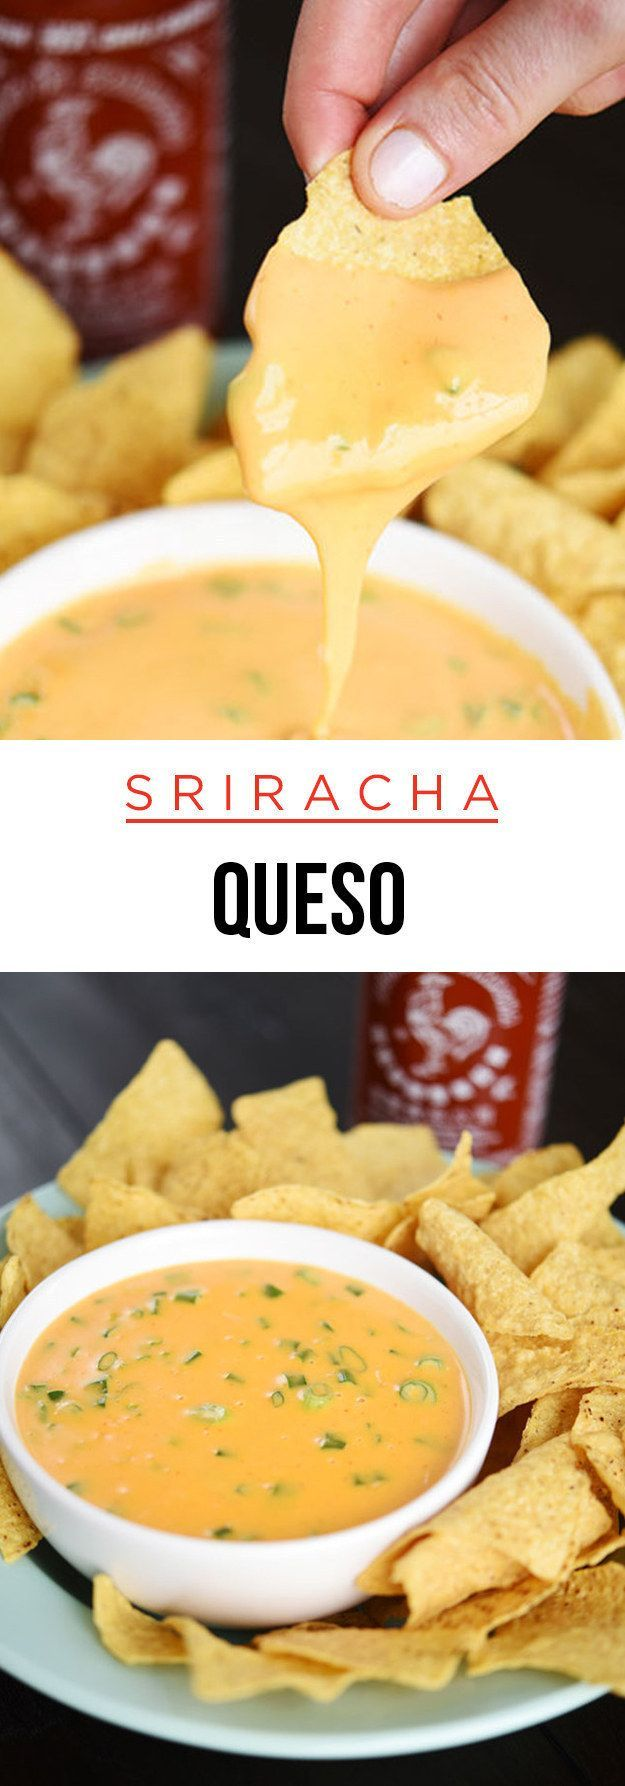 Sriracha Queso | This is an amazing dip that will make your tastebuds burst with spicy flavor.